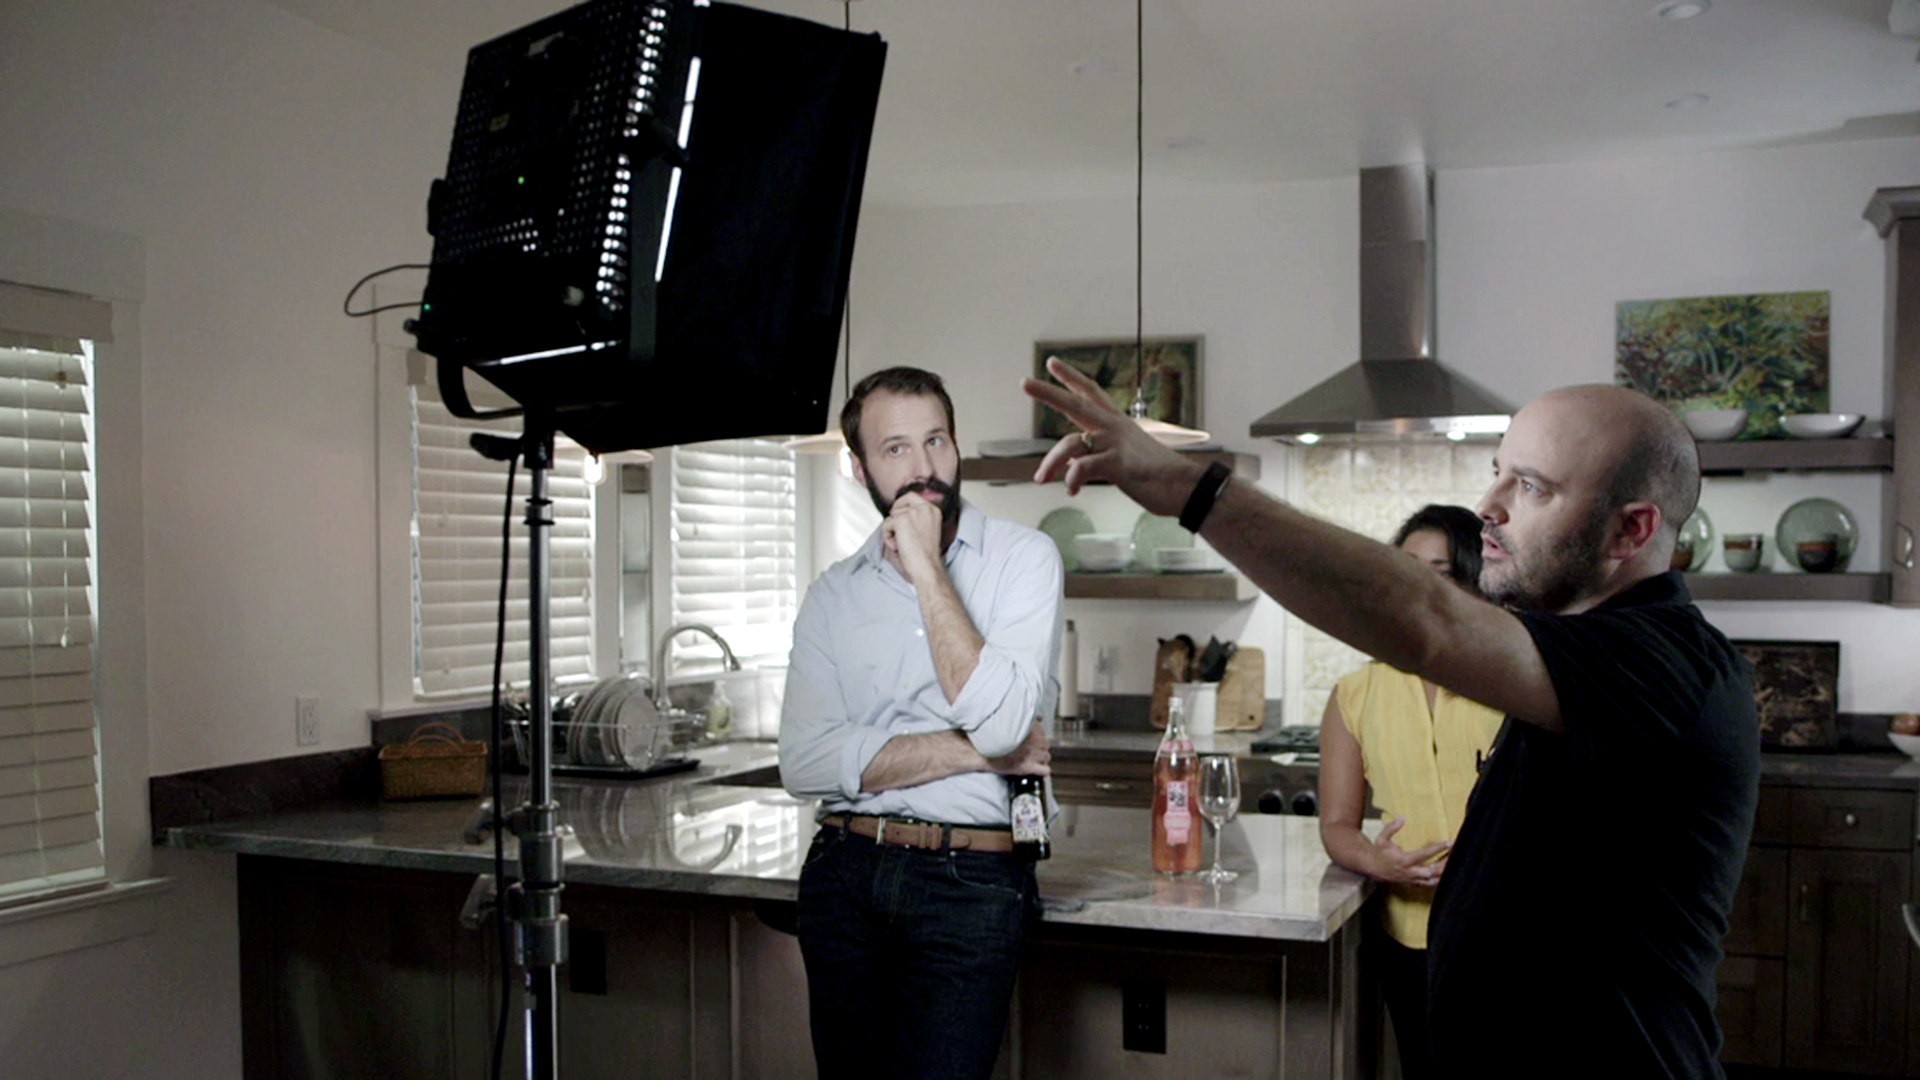 Lighting actors and products together: Advanced Cinematic Video Lighting